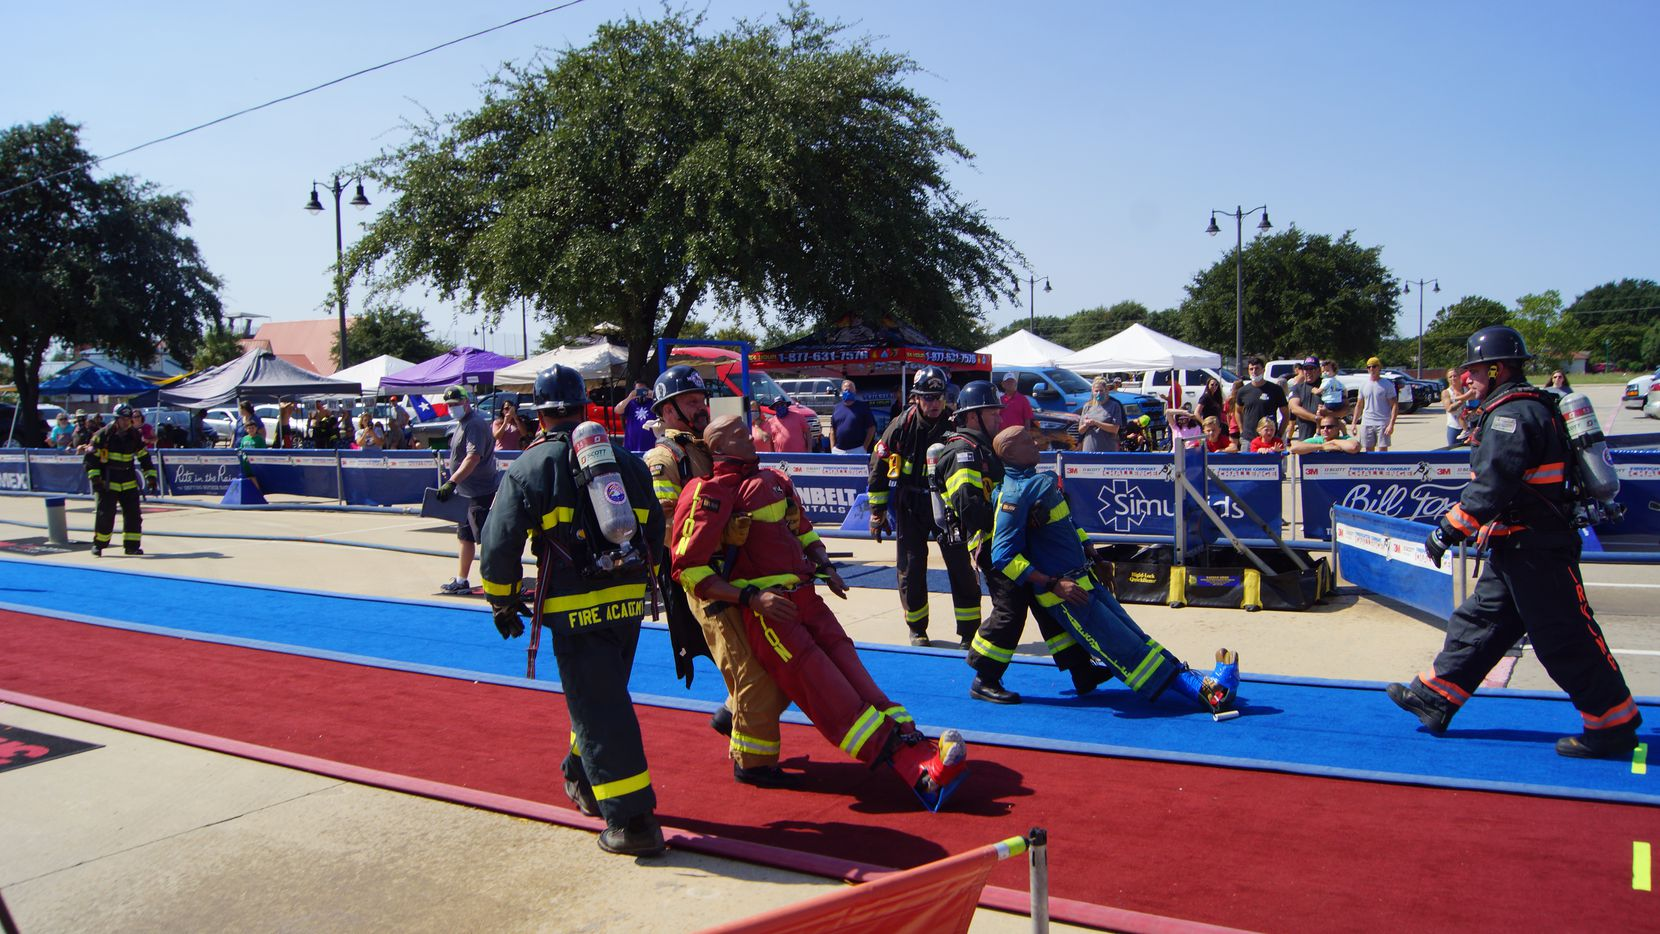 Firefighters compete at a previous Firefighter Combat Challenge, which in 2020 is taking place in Irving from Oct. 22-25.